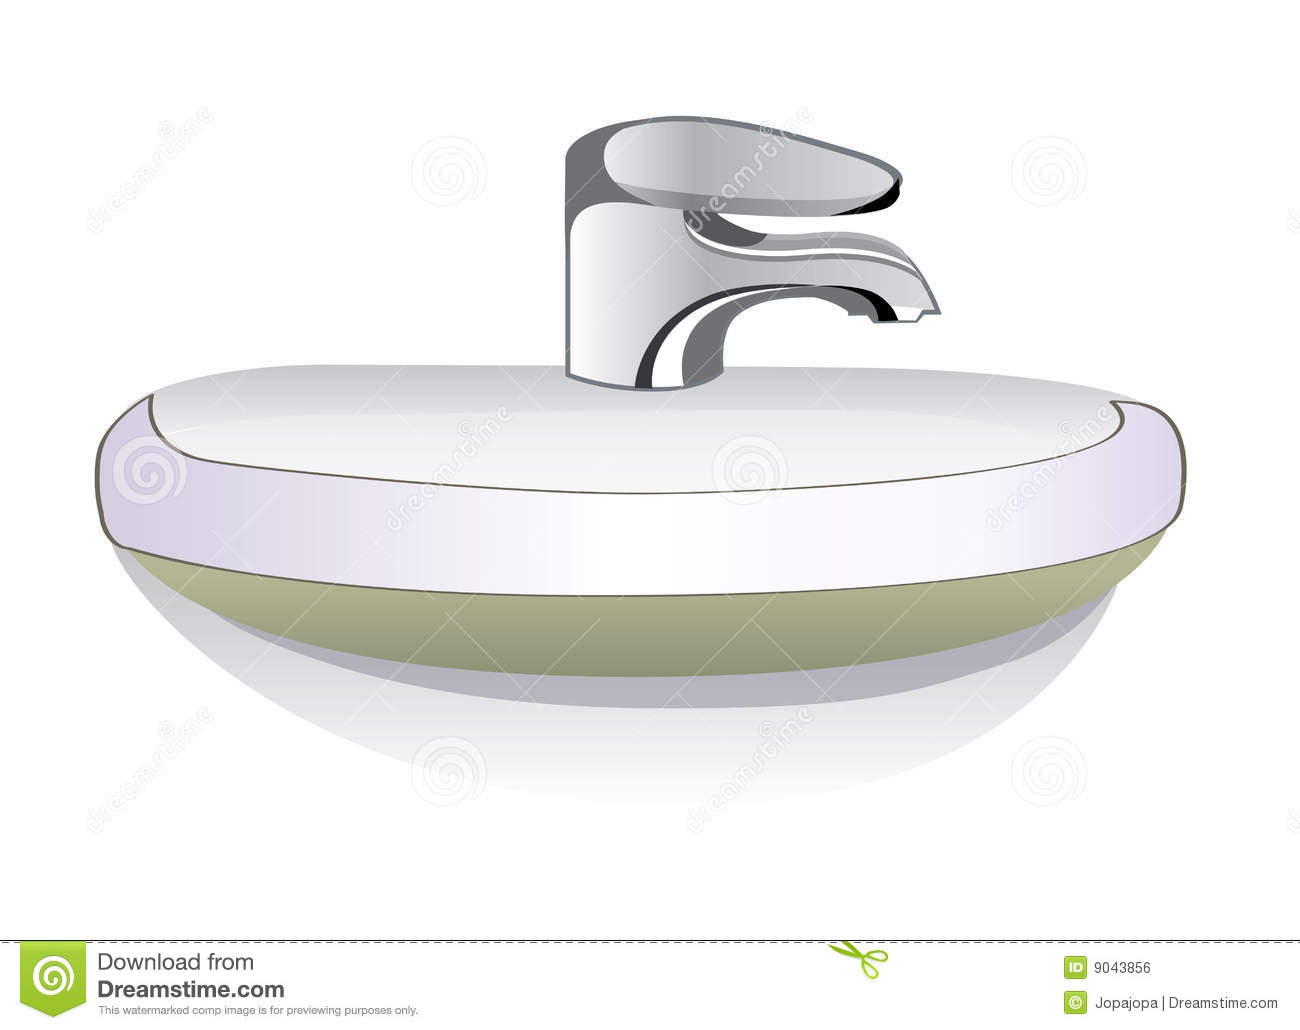 Bathroom Sink Illustration Royalty Free Stock Image